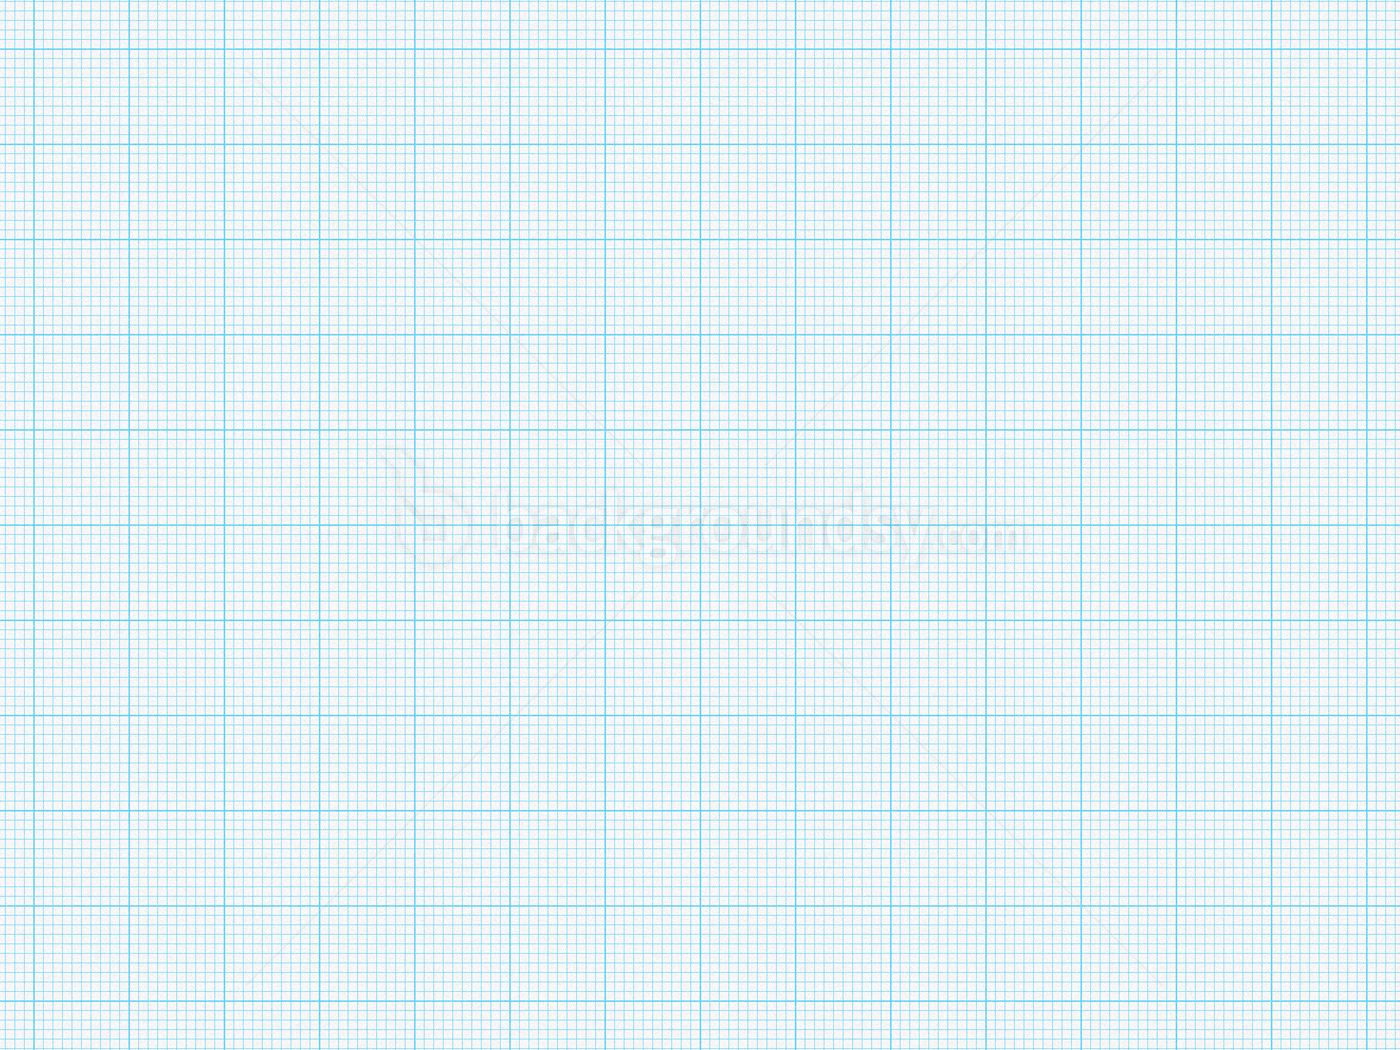 Graph paper | Backgroundsy.com